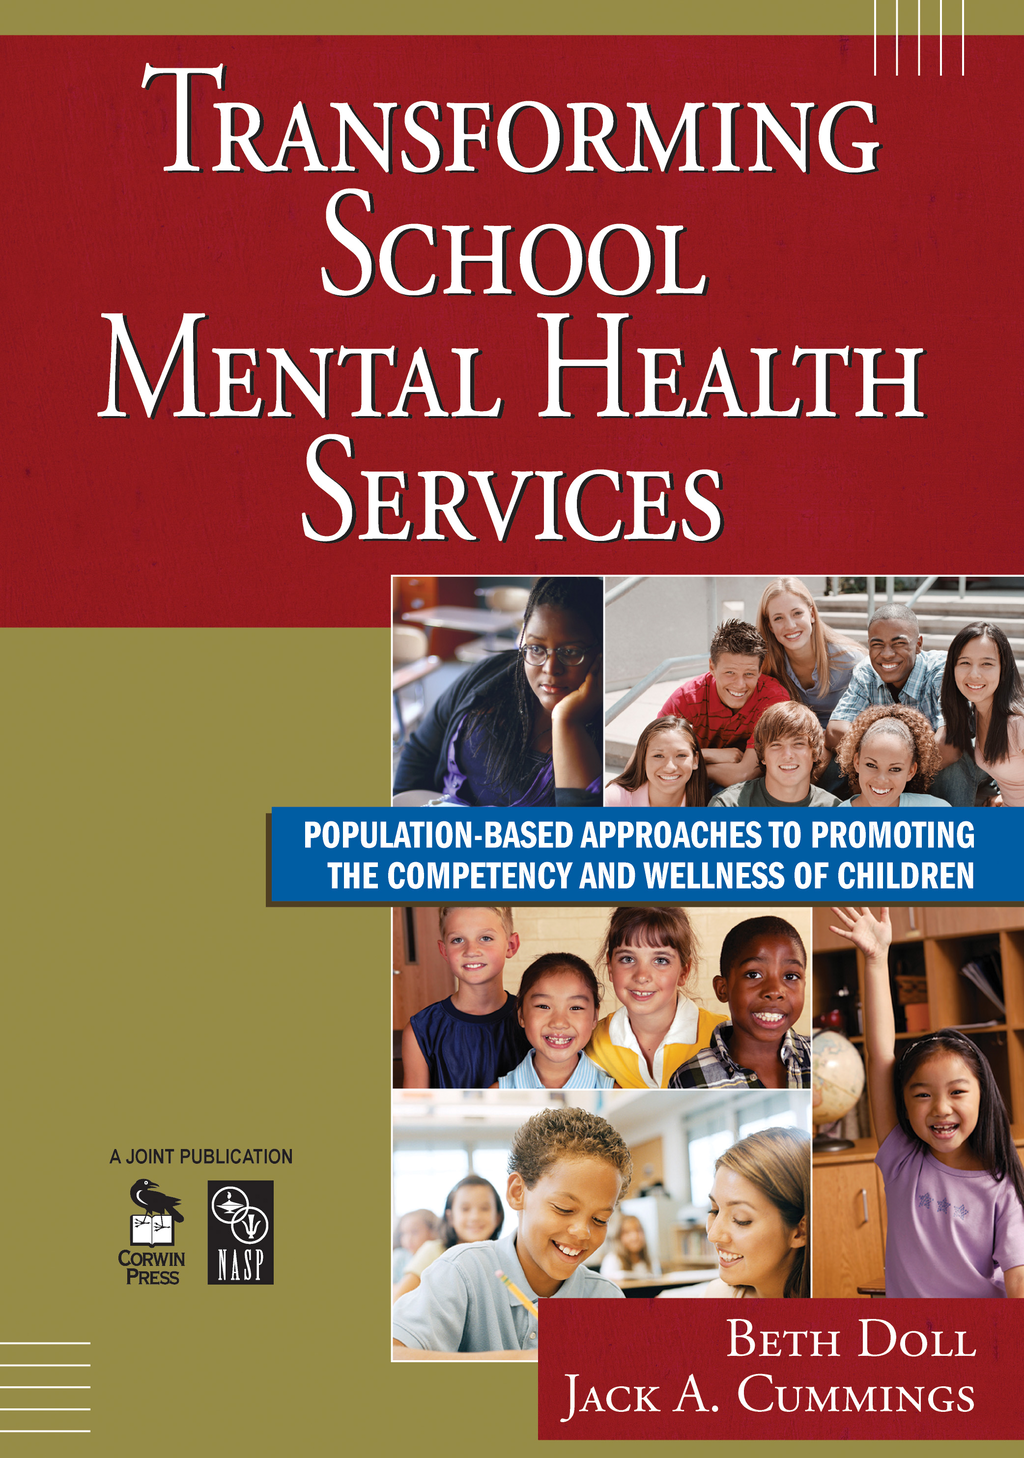 Transforming School Mental Health Services Population-Based Approaches to Promoting the Competency and Wellness of Children